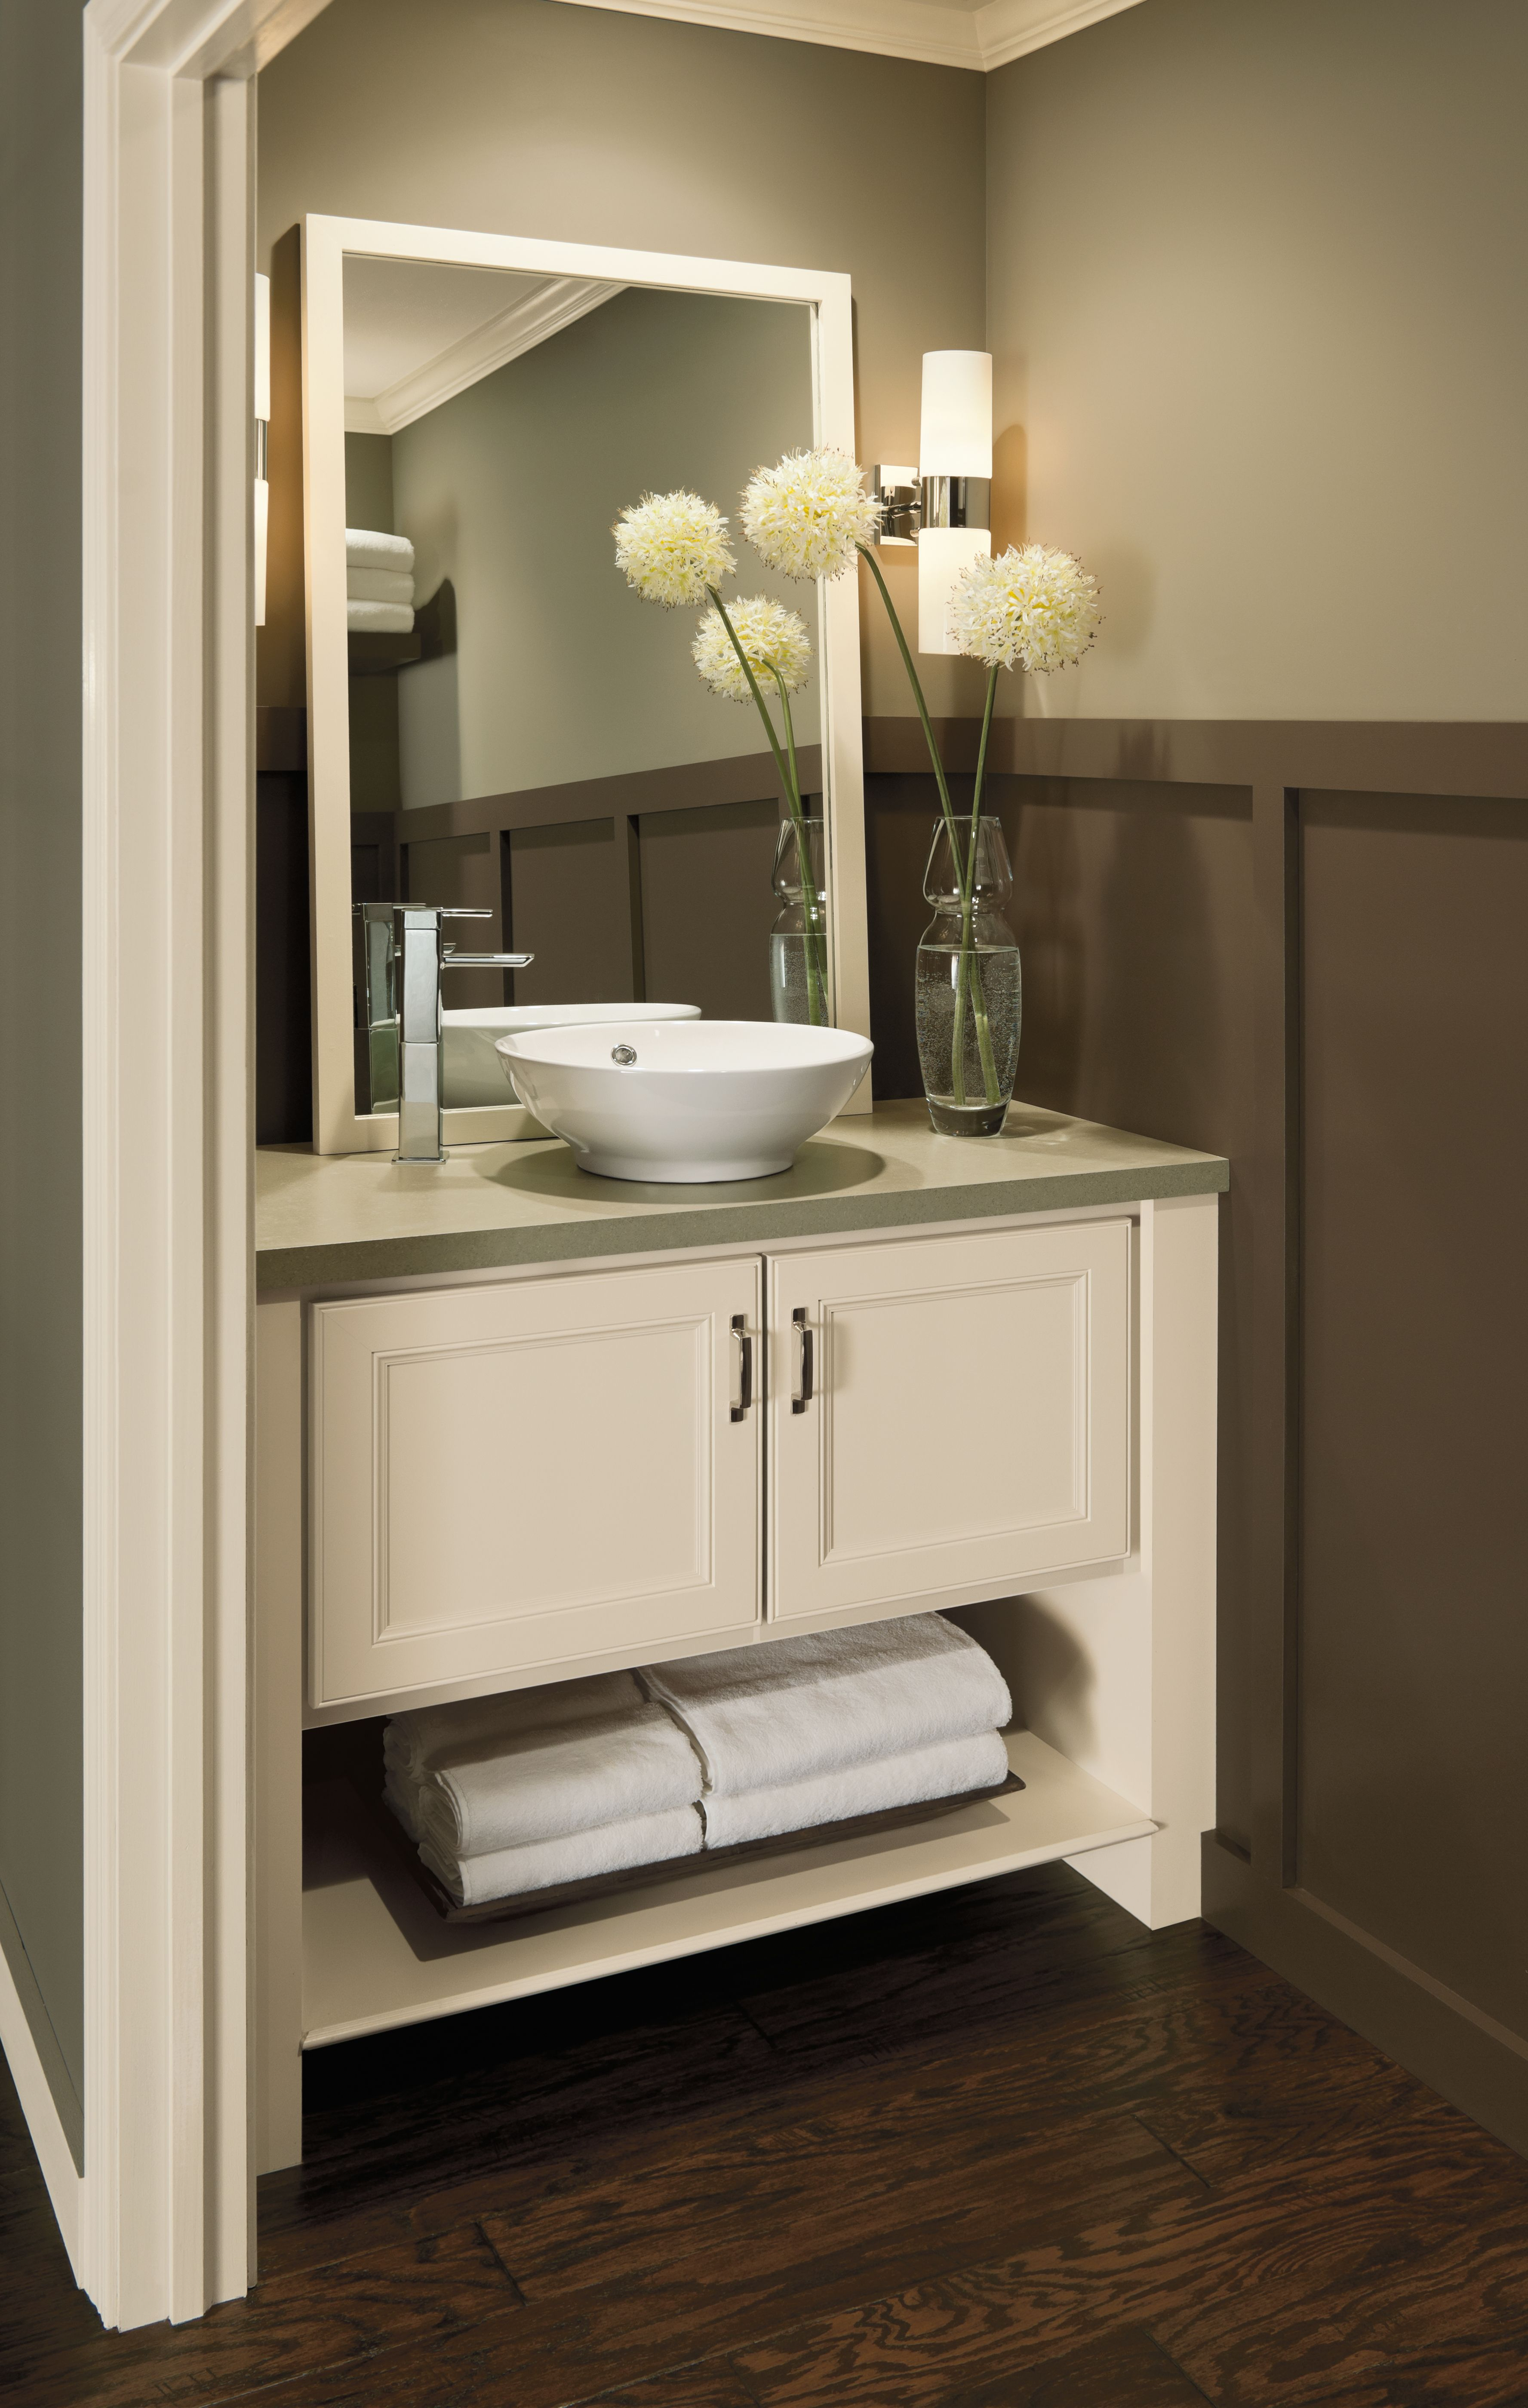 A great use of space in a smaller bathroom